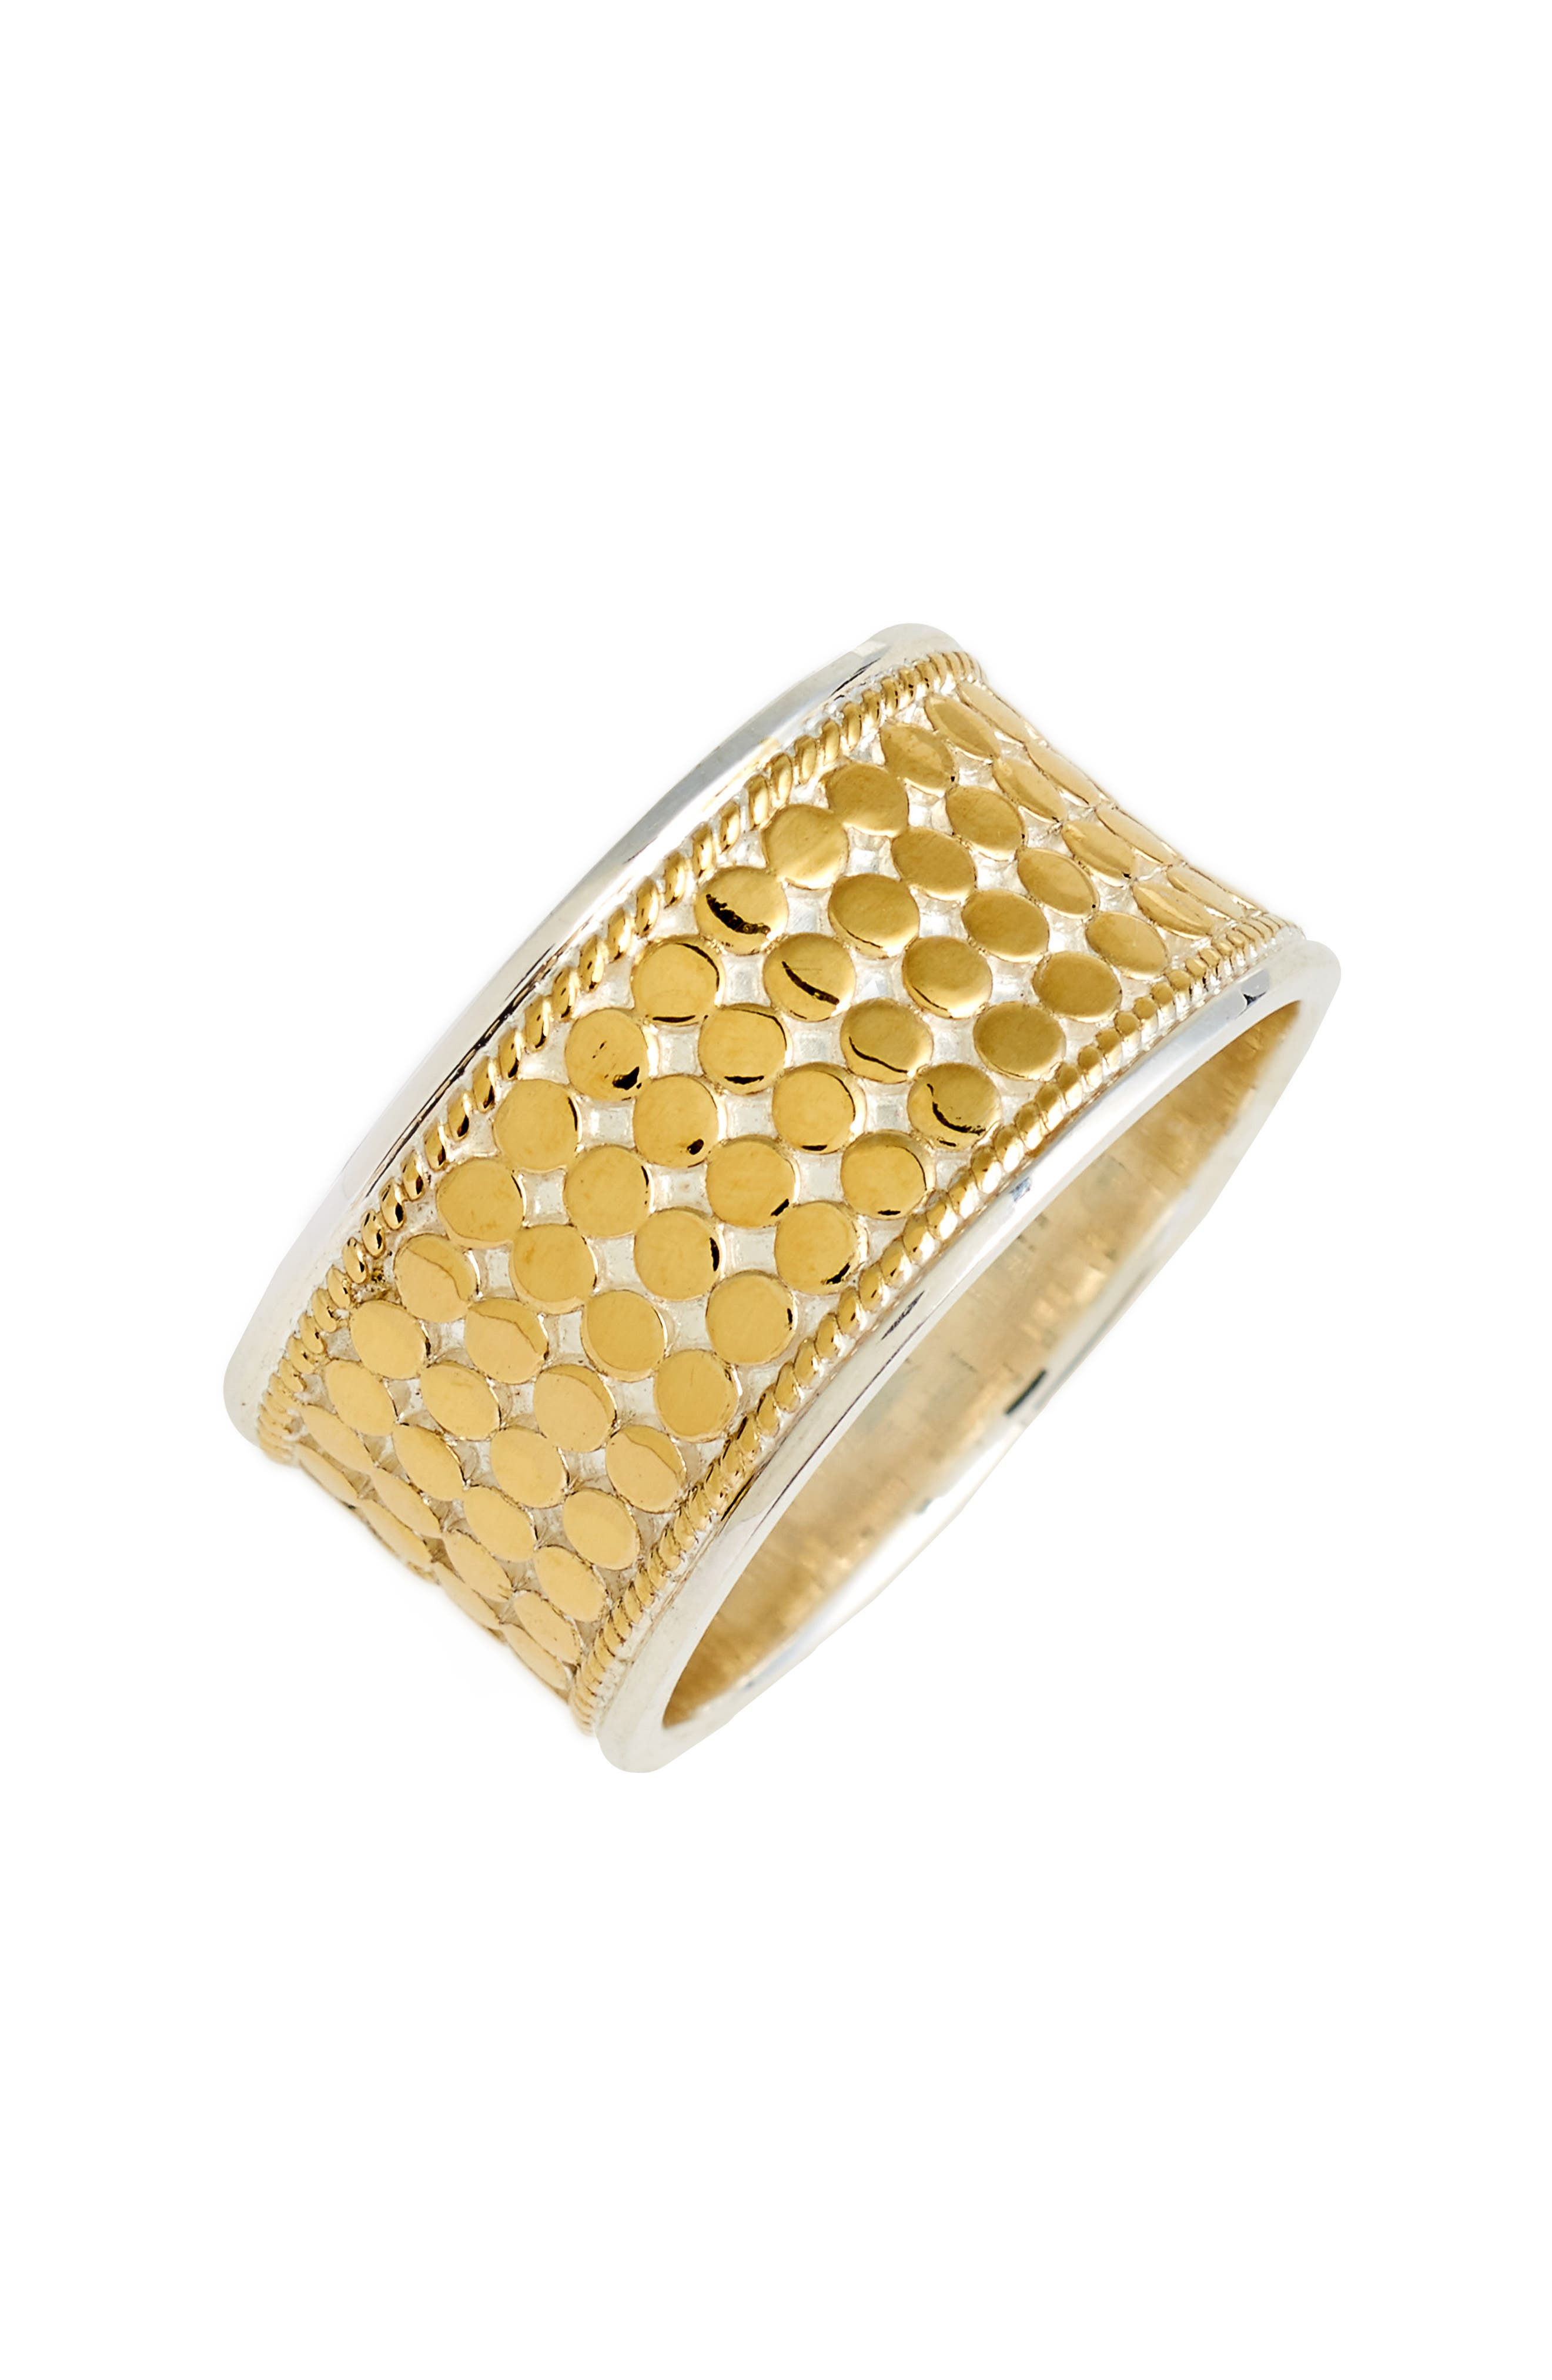 Alternate Image 1 Selected - Anna Beck Vermeil Cigar Band Ring